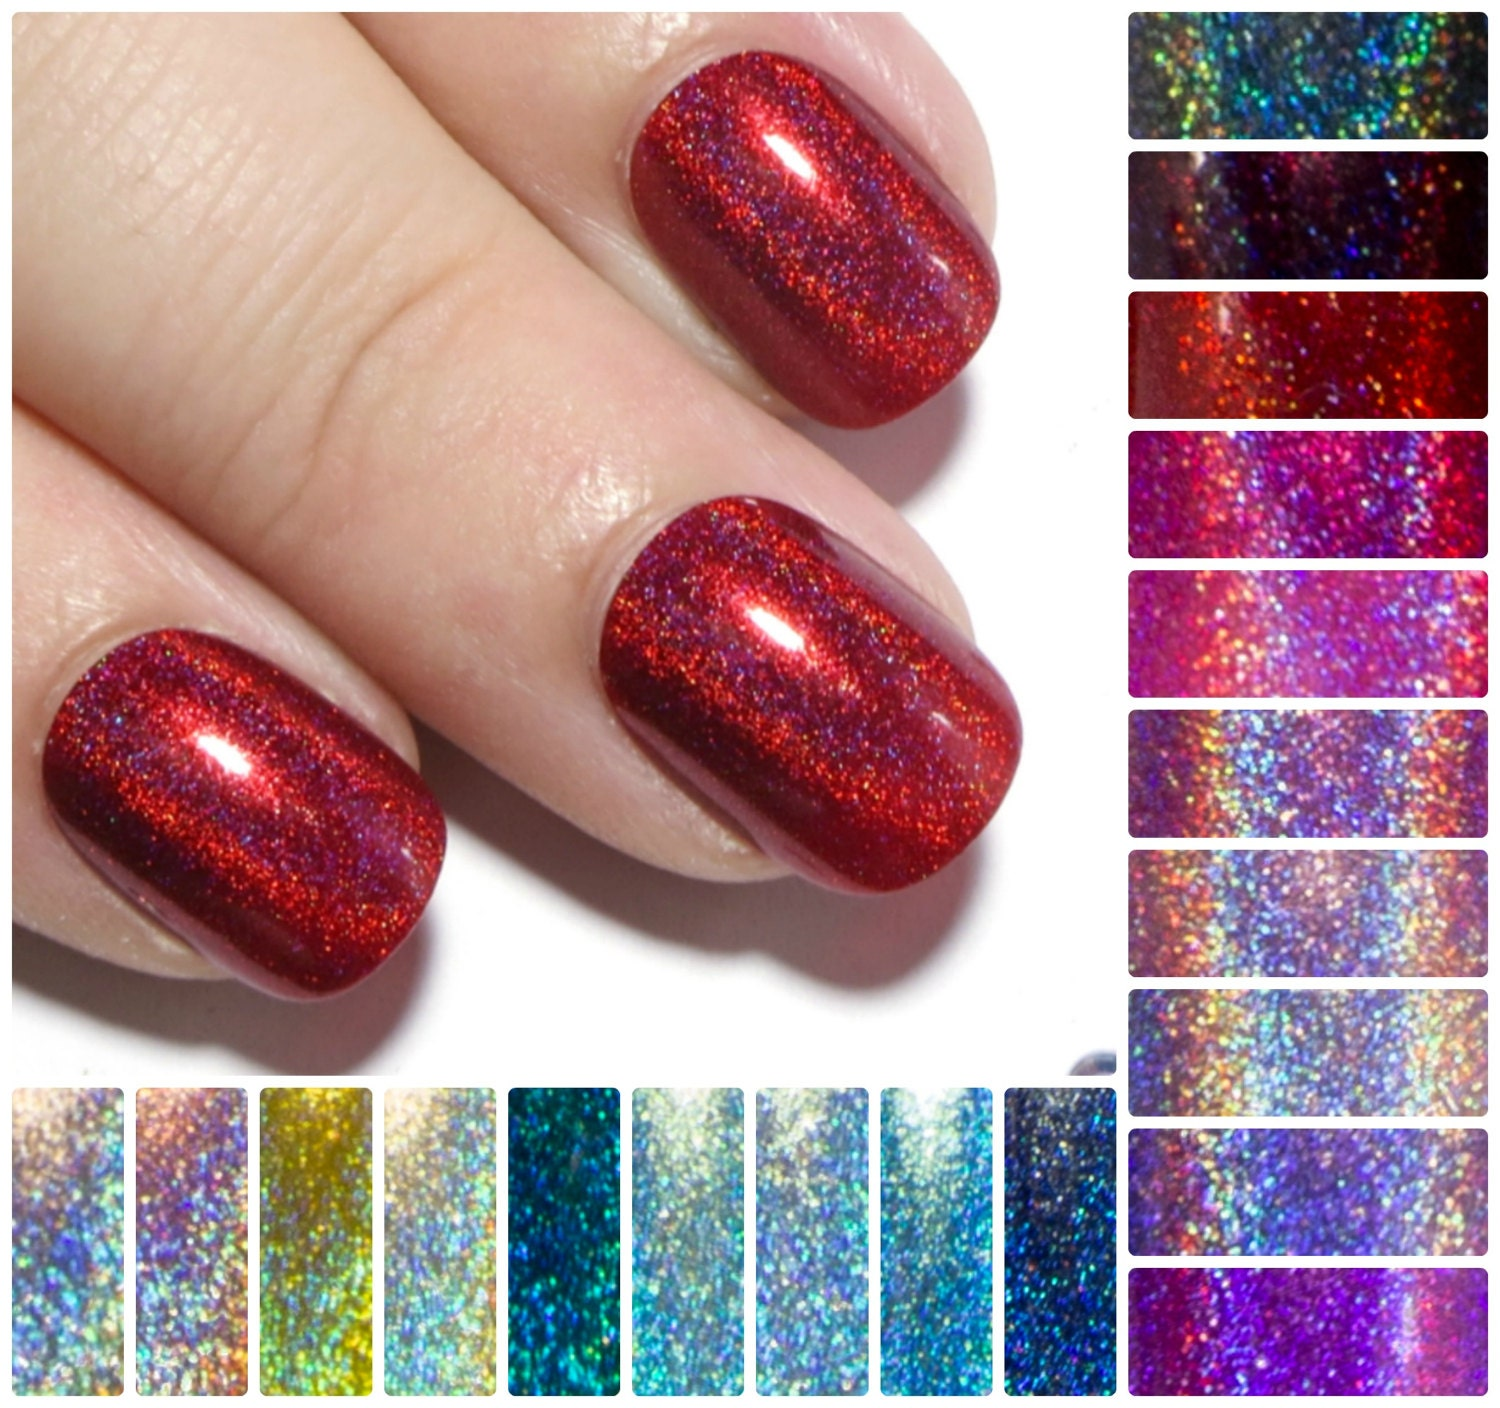 Extra Small Fake Nails Holographic Press On Nails Petite